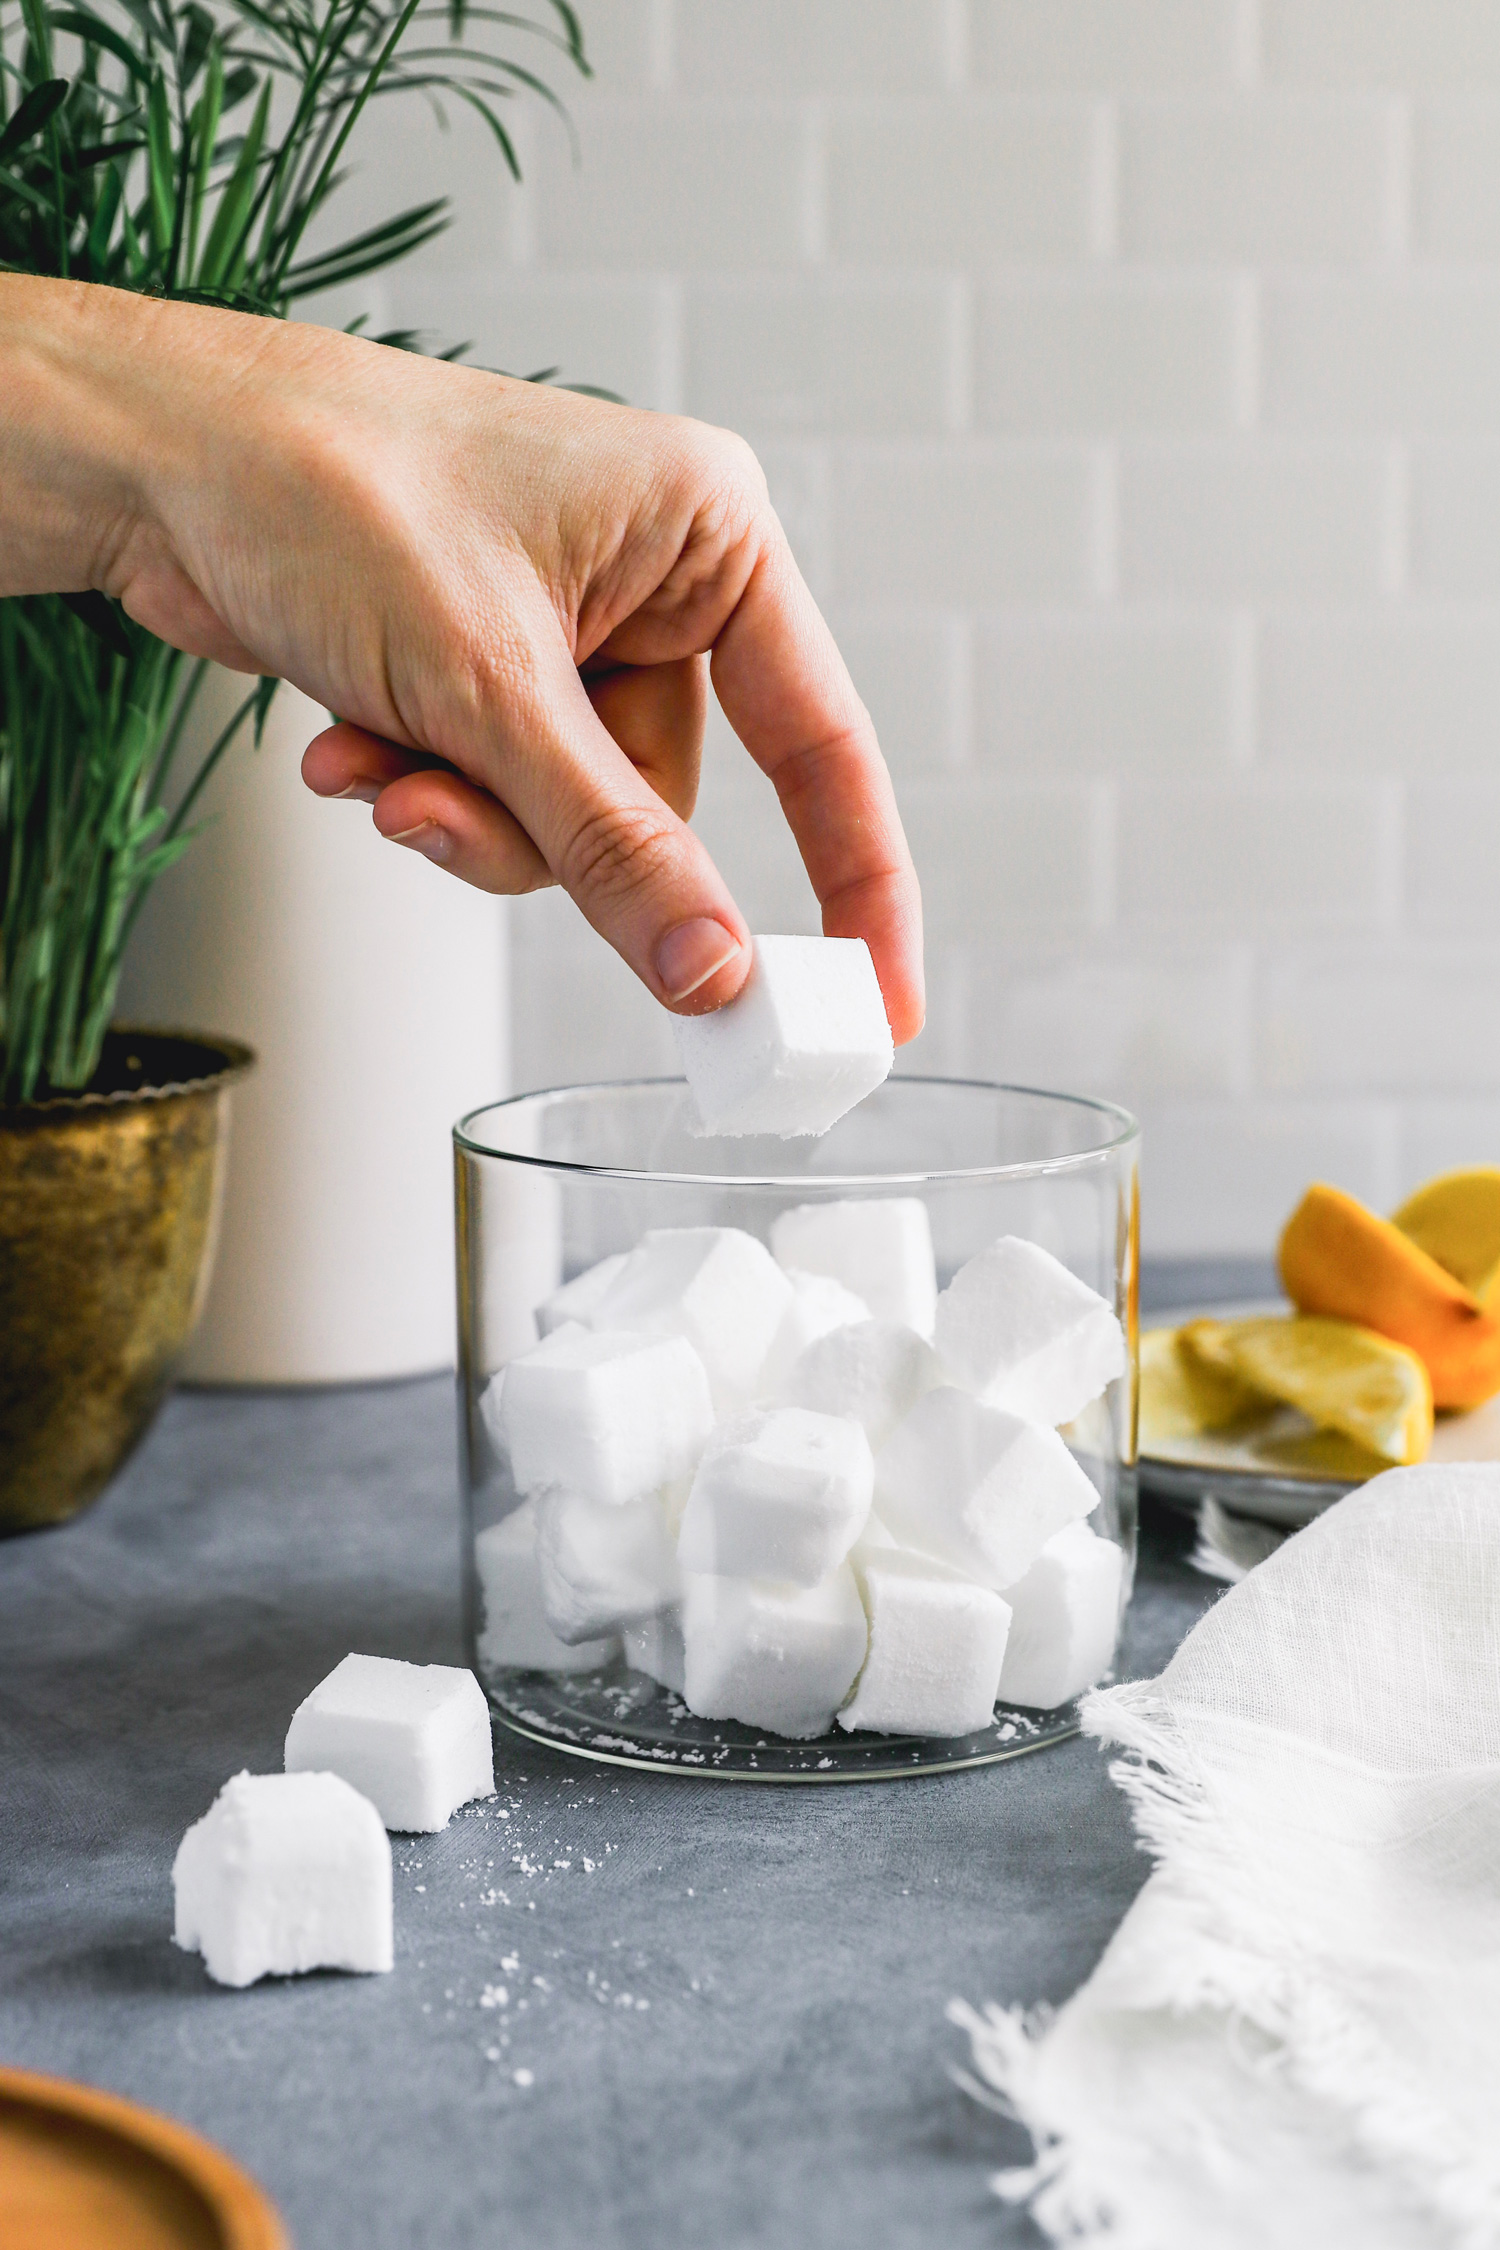 Hate doing dishes? We do too. Do them in record time with these DIY dishwasher pods made with non-toxic ingredients you probably already have!